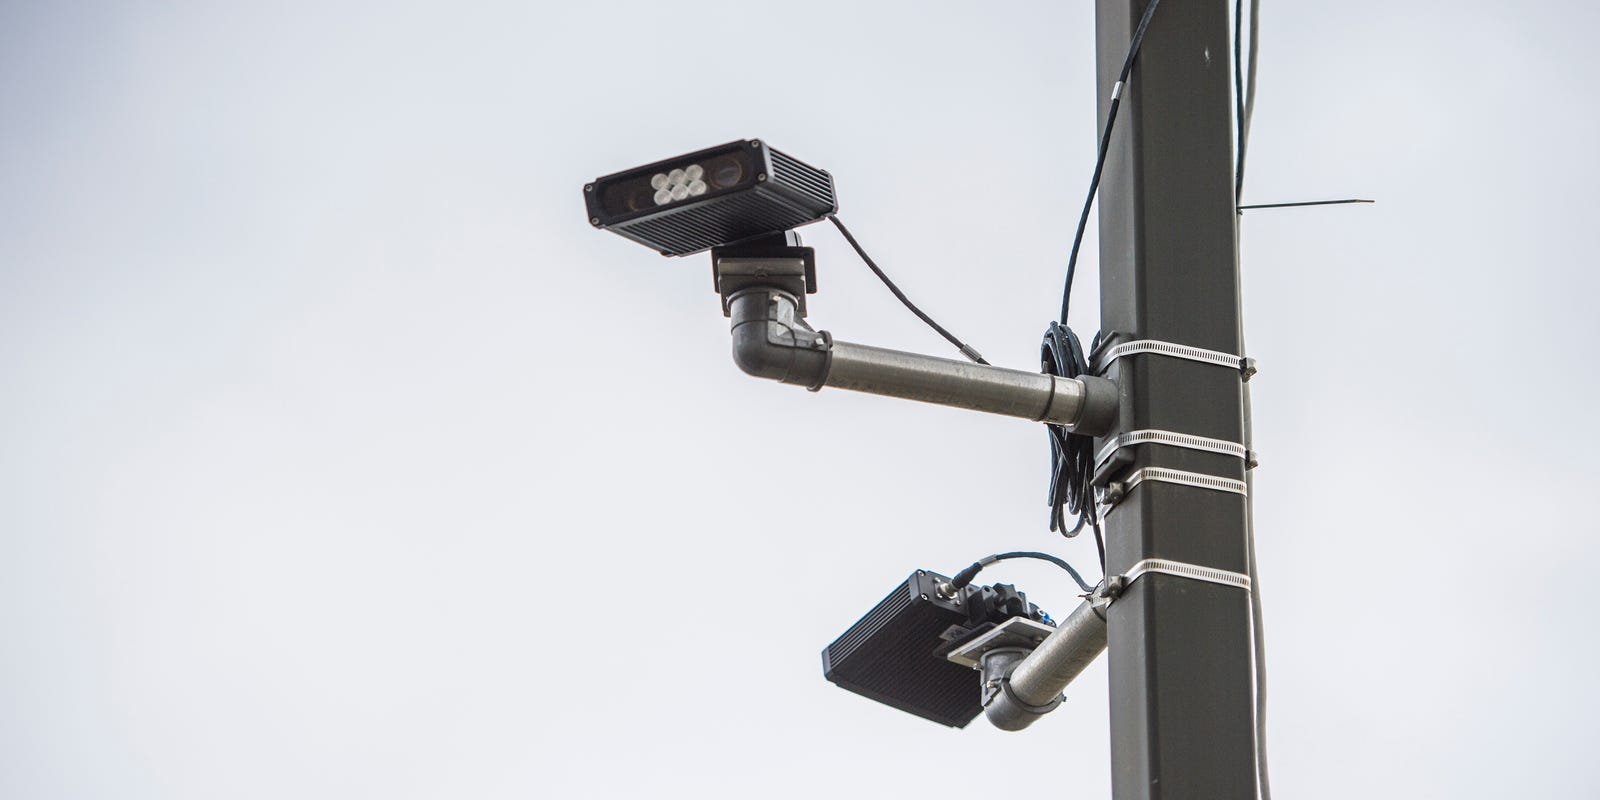 Mt. Juliet identifies 37 license plate recognition camera locations; not for traffic enforcement